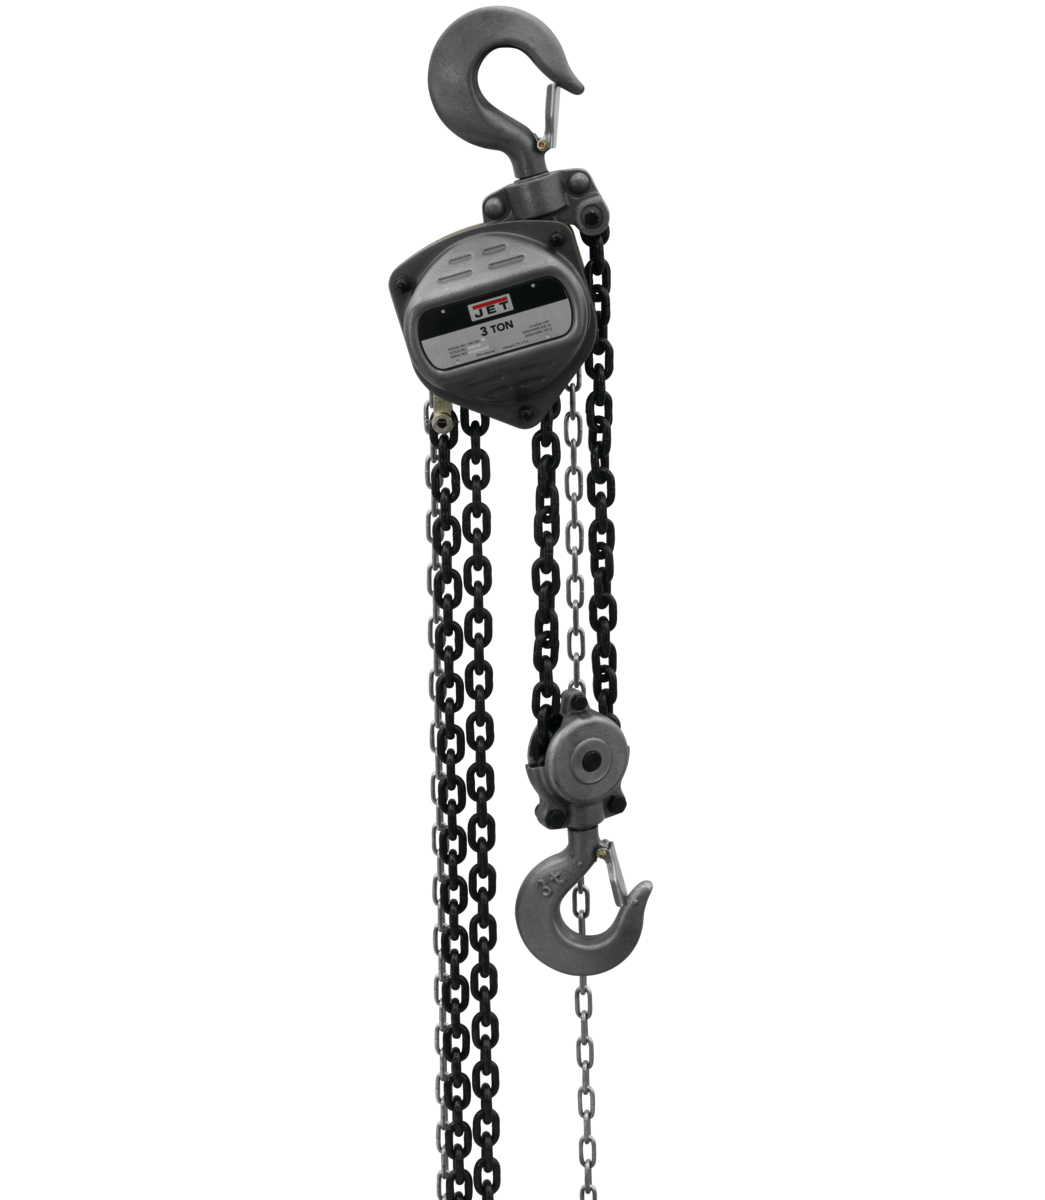 S90-300-10, 3-Ton Hand Chain Hoist With 10' Lift